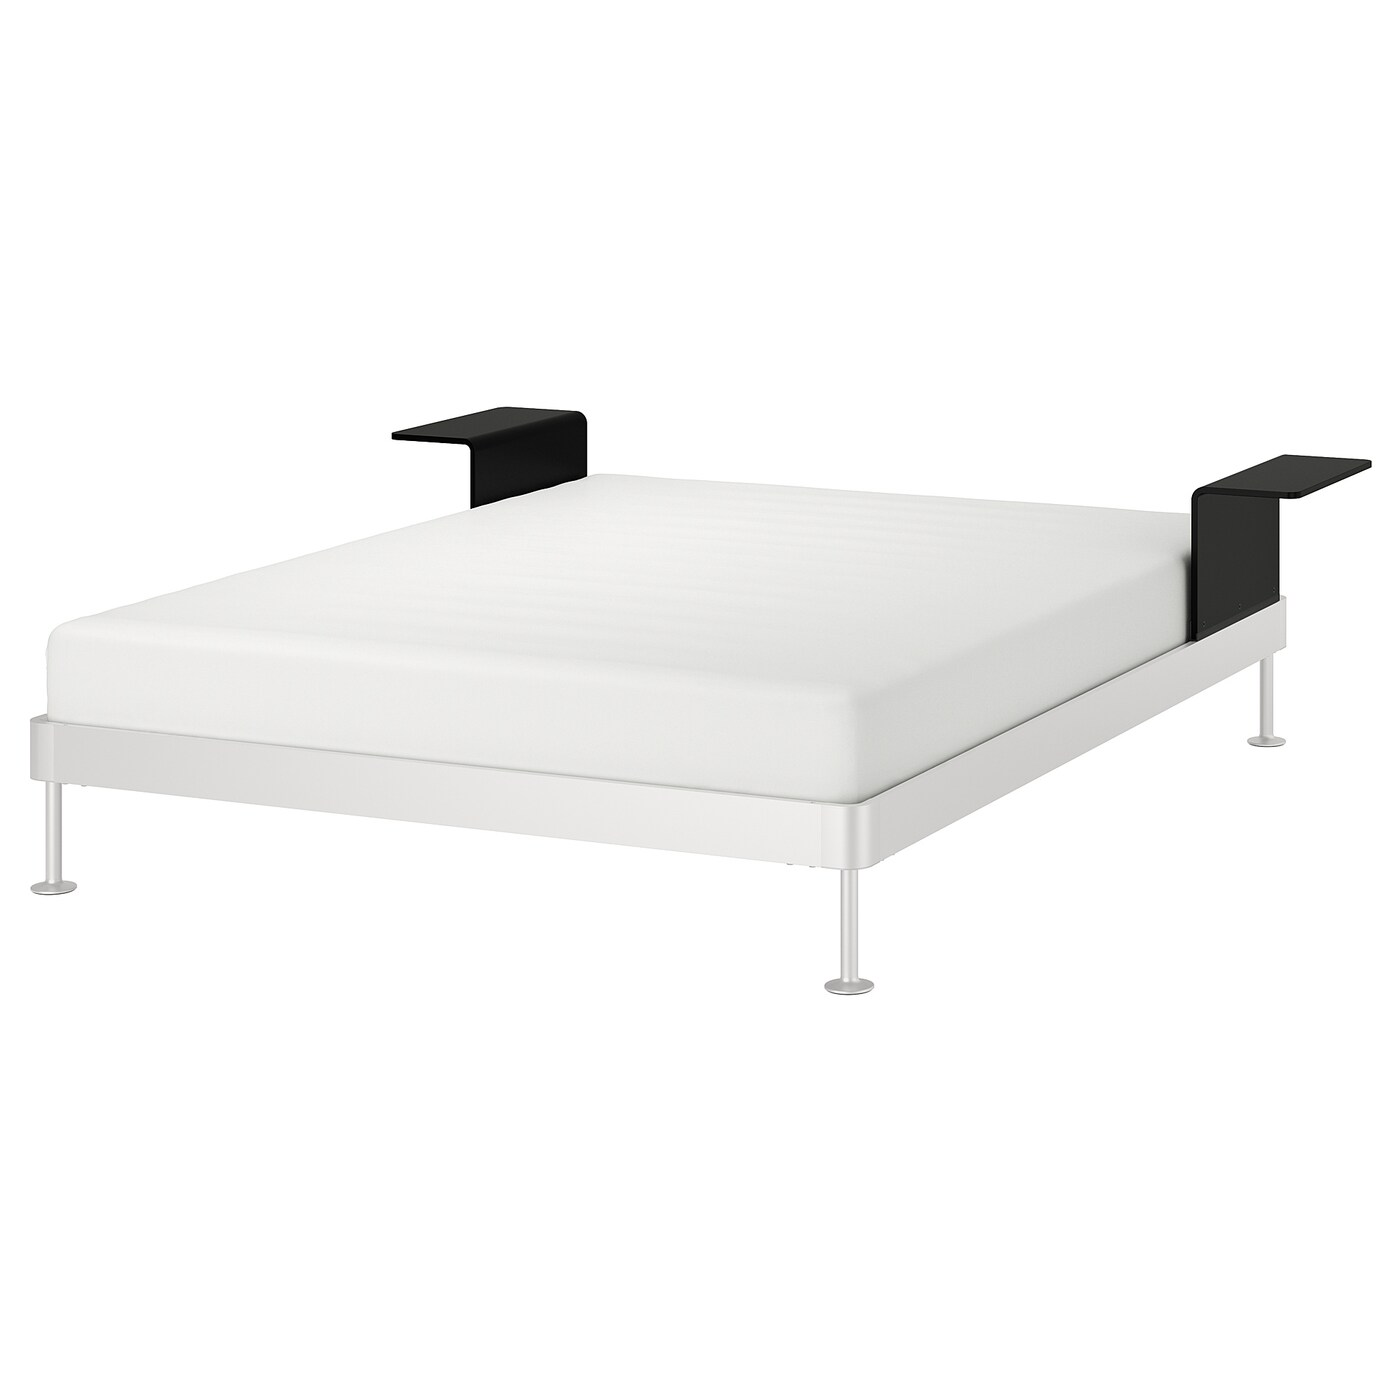 Ikea Iron Bed Double King Size Beds Bed Frames Ikea